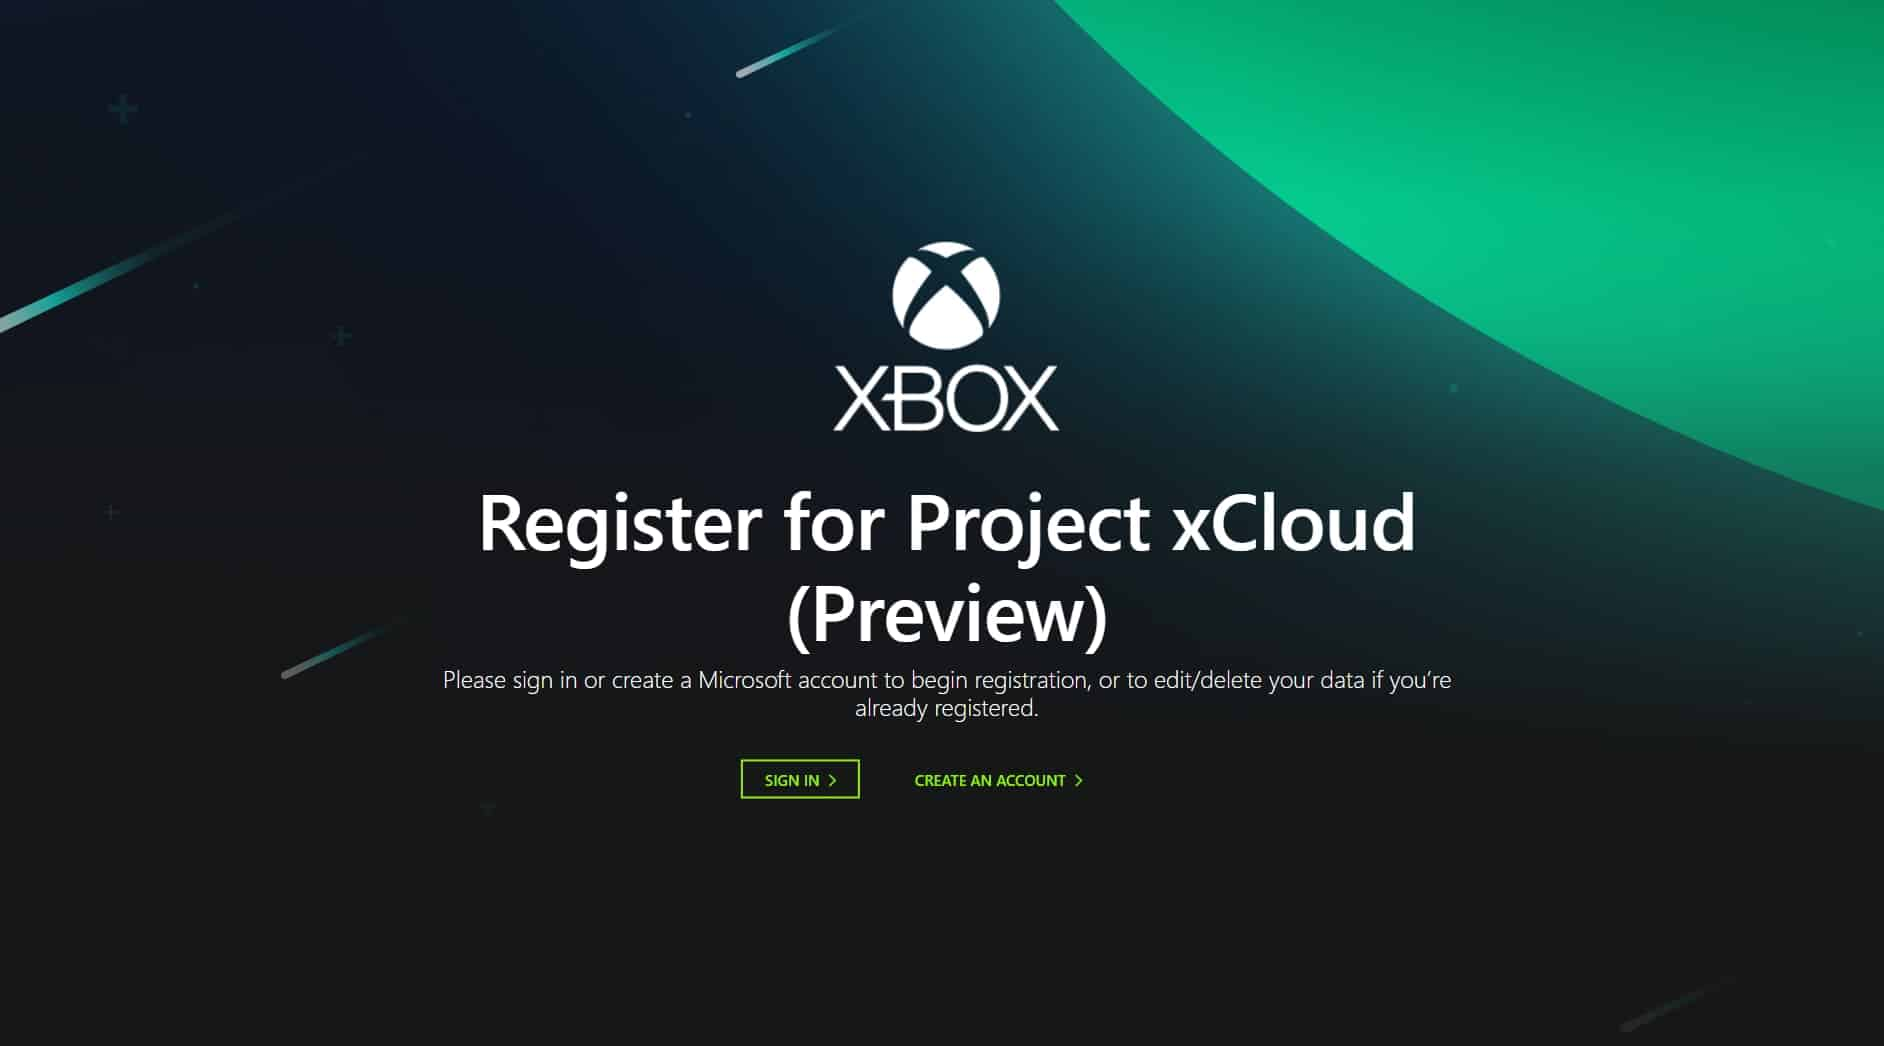 xCloud Registration Page